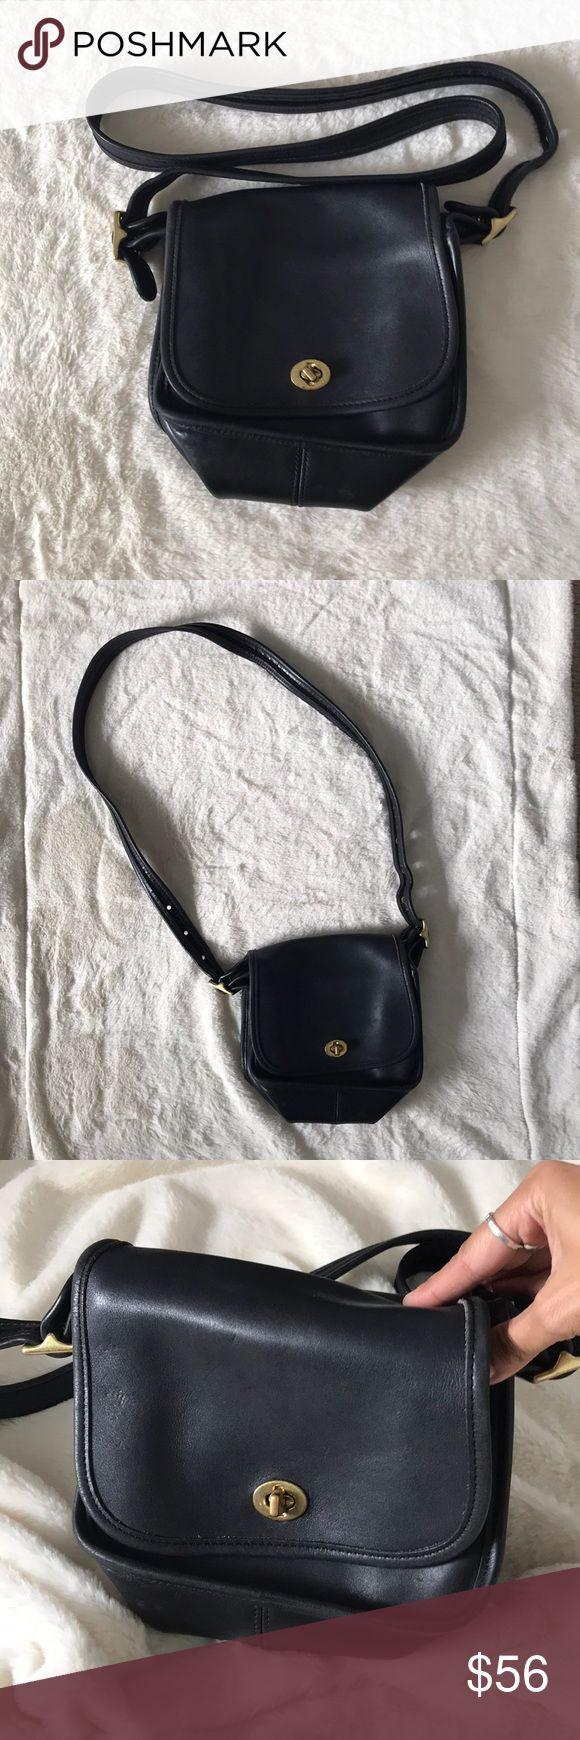 Vintage Coach black crossbody purse handbag Vintage Coach black crossbody purse handbag, Toggle closure, zipper pocket inside, purchased from another vintage seller with guarantee authenticity, great condition, worn a few times and received several compliments, but slightly too small for my everyday carry,   Please feel free to ask questions and/or make an offer.     Outside measurements Length 7in x Width 7in   Exterior pocket on the back 5in x 7in  Strap Length on longest setting 45in…